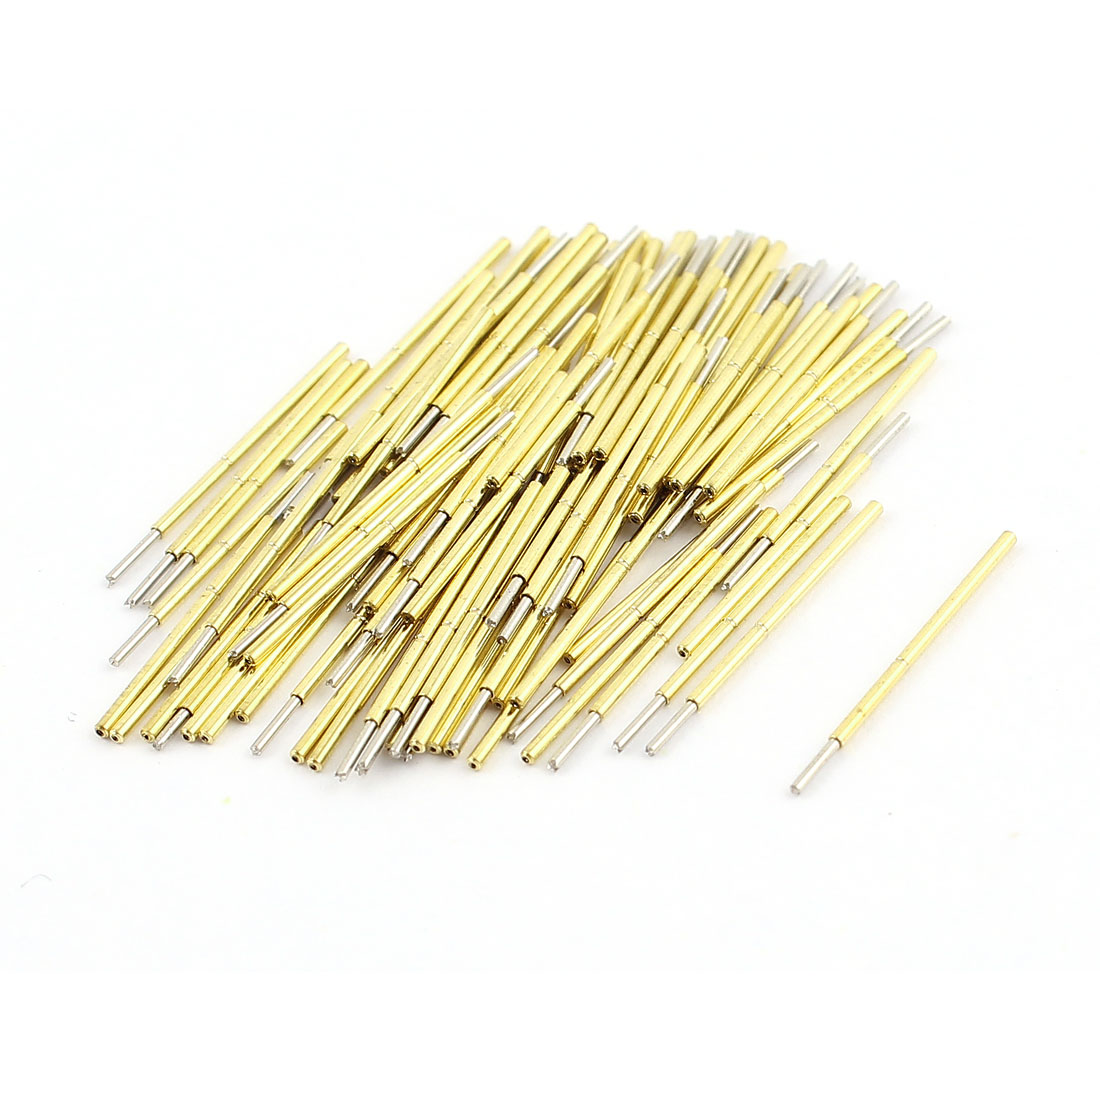 100Pcs P50-Q1 Dia 0.68mm Length 16.55mm 75g Spring Test Probe Pin